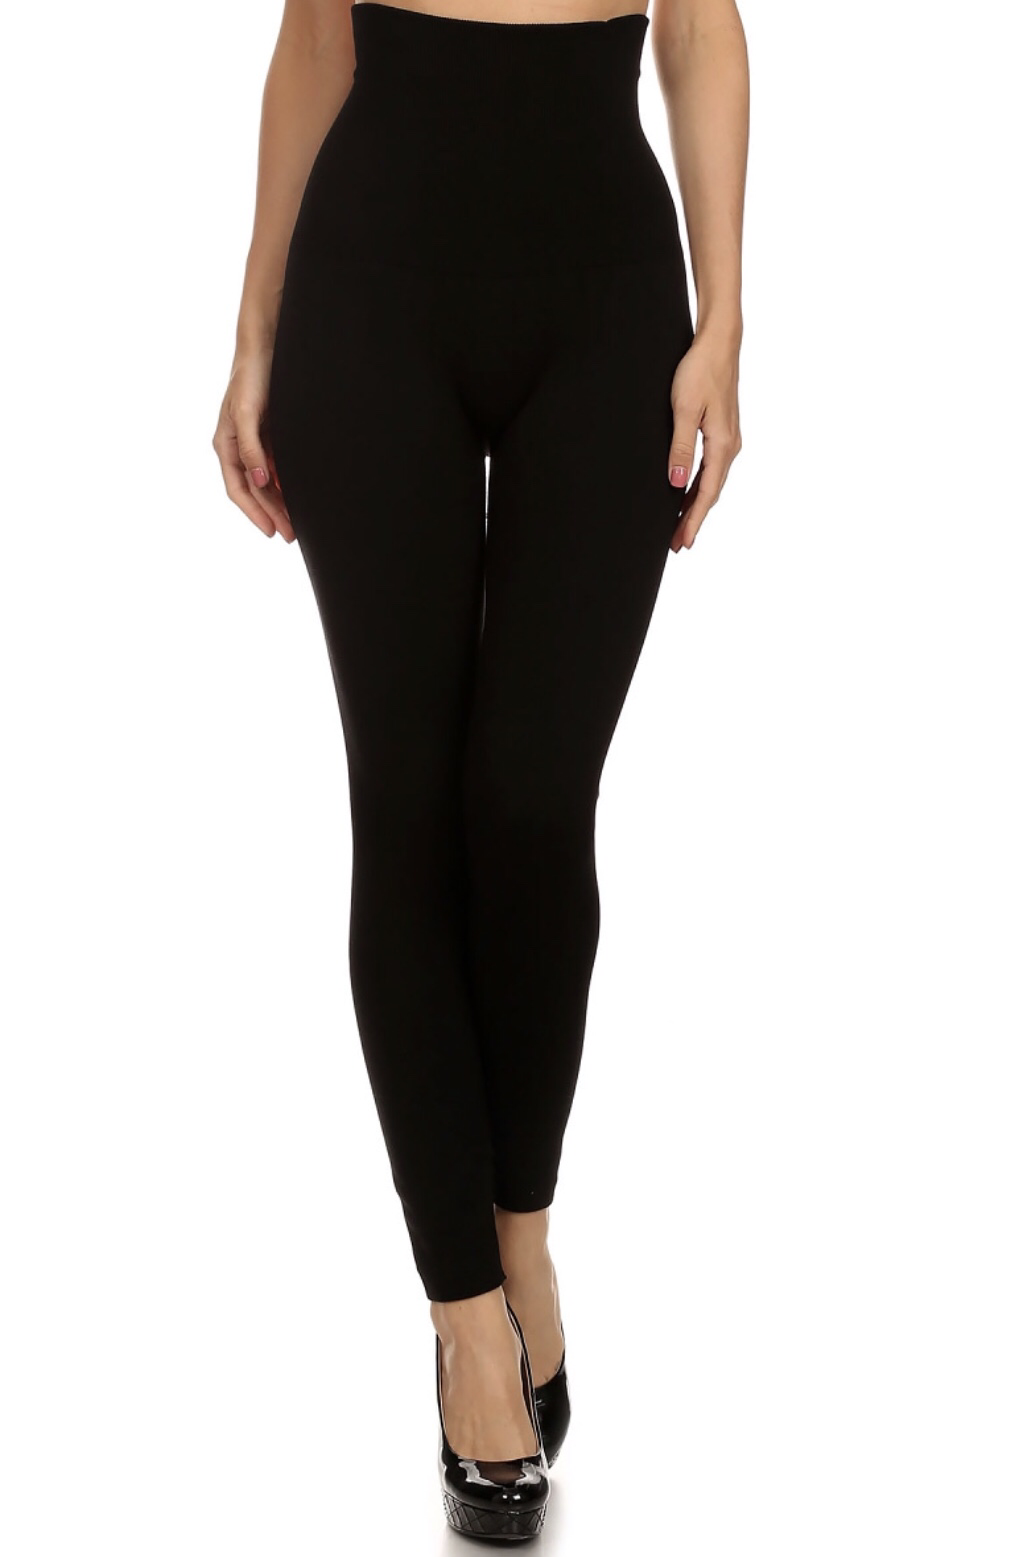 High Rise Black Leggings - Fleece Lined 99508